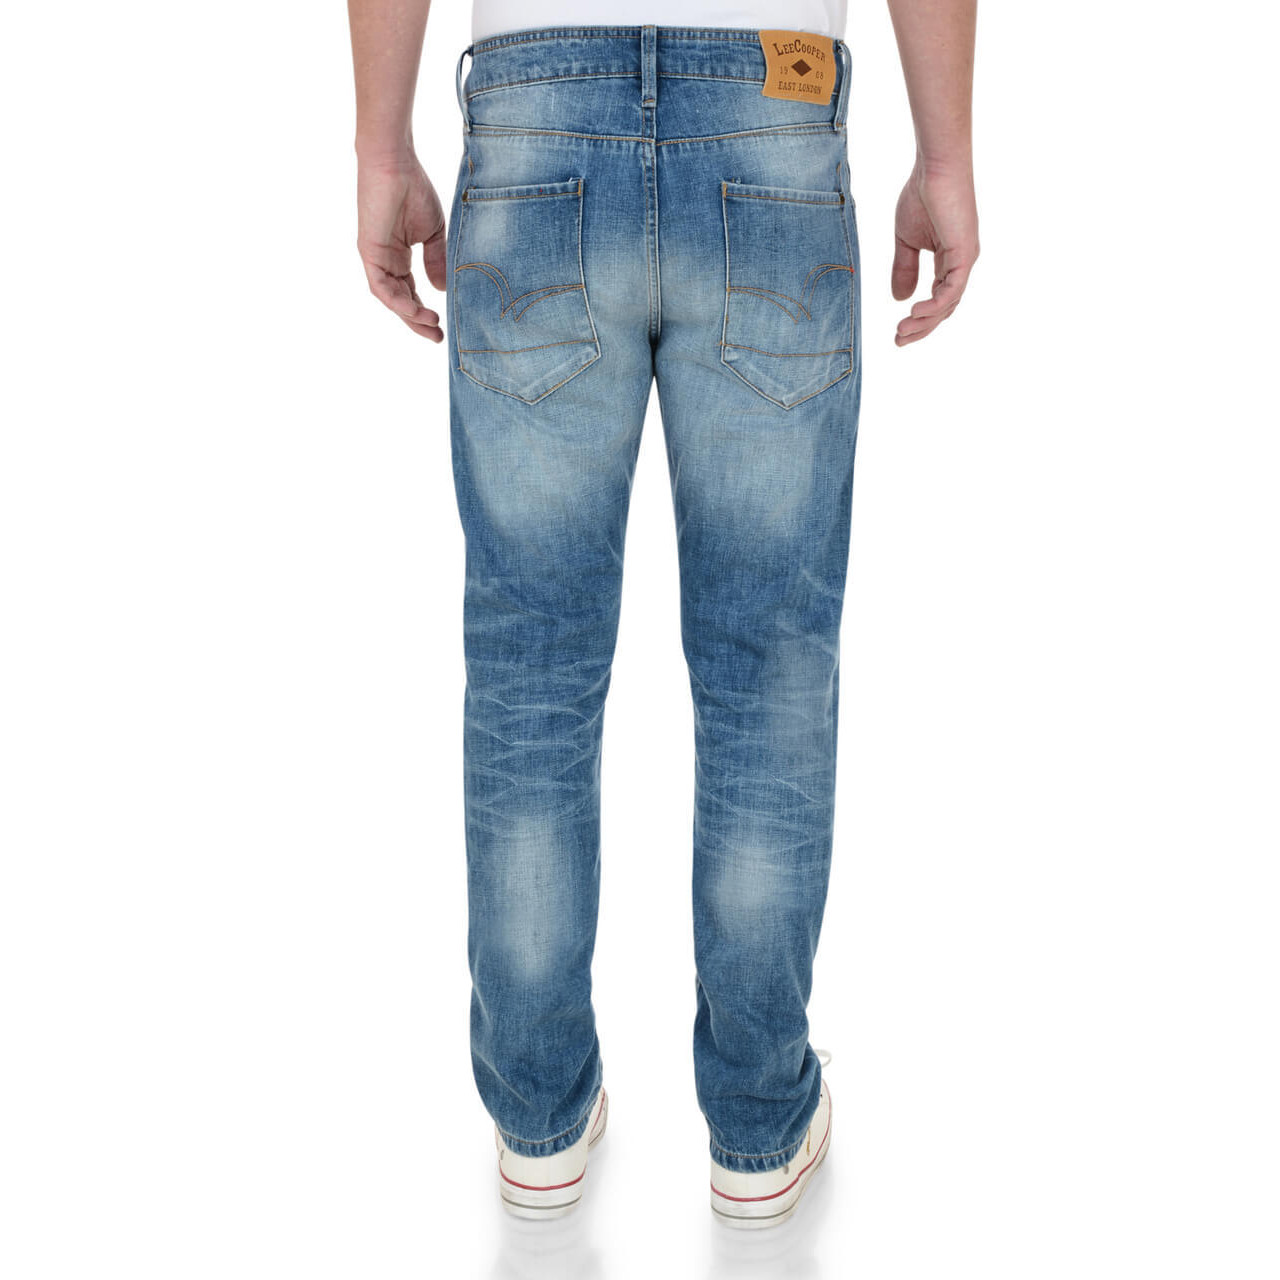 lee cooper jeans fit guide